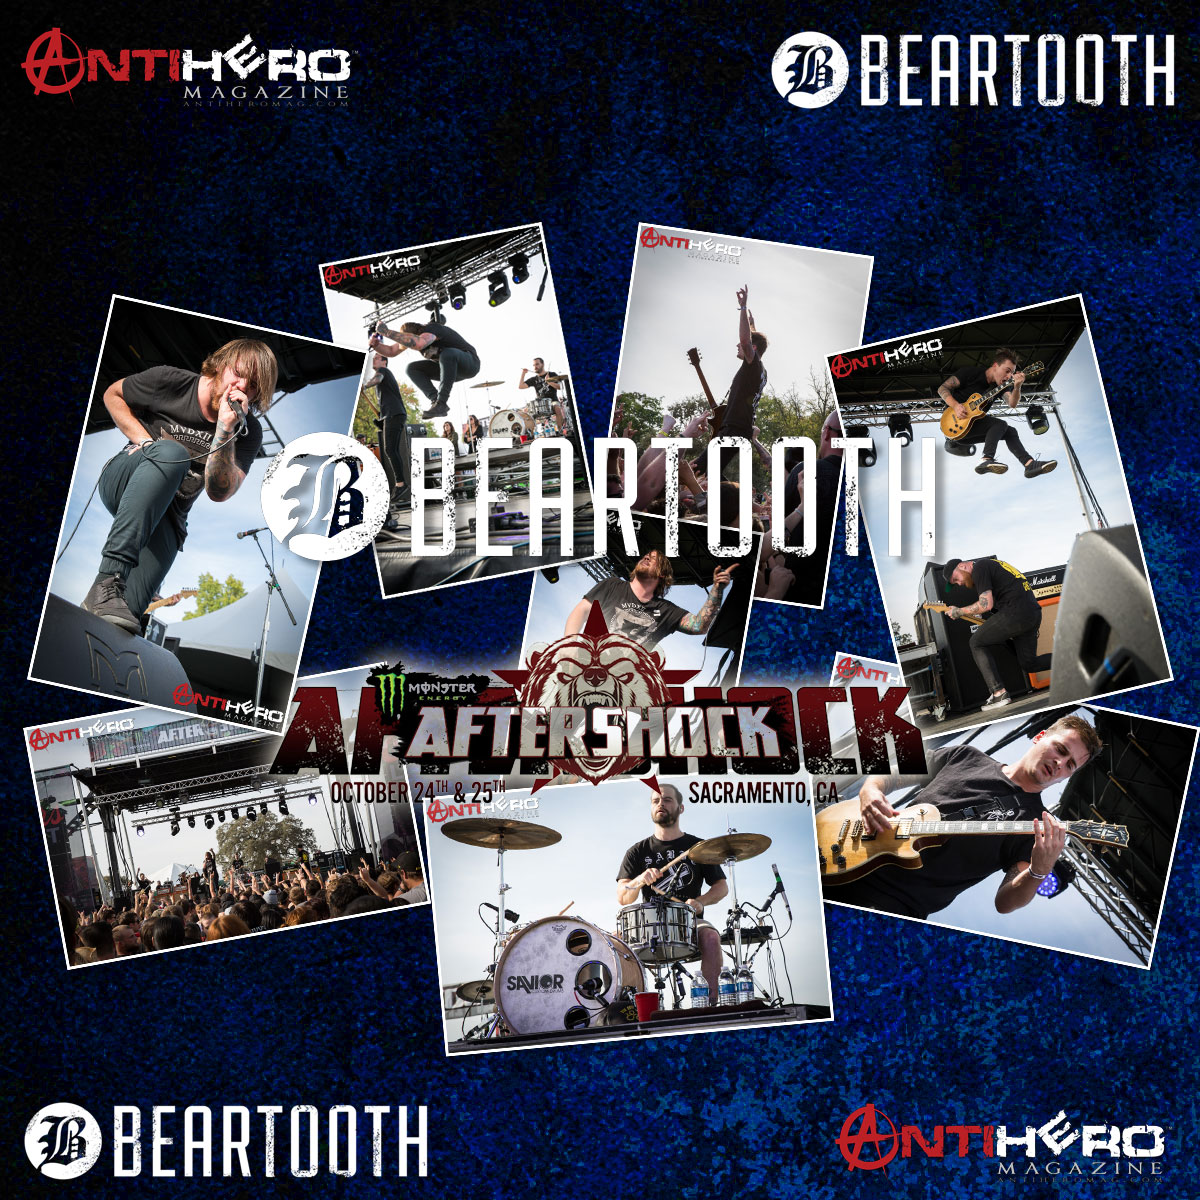 aftershock-beartooth-cover